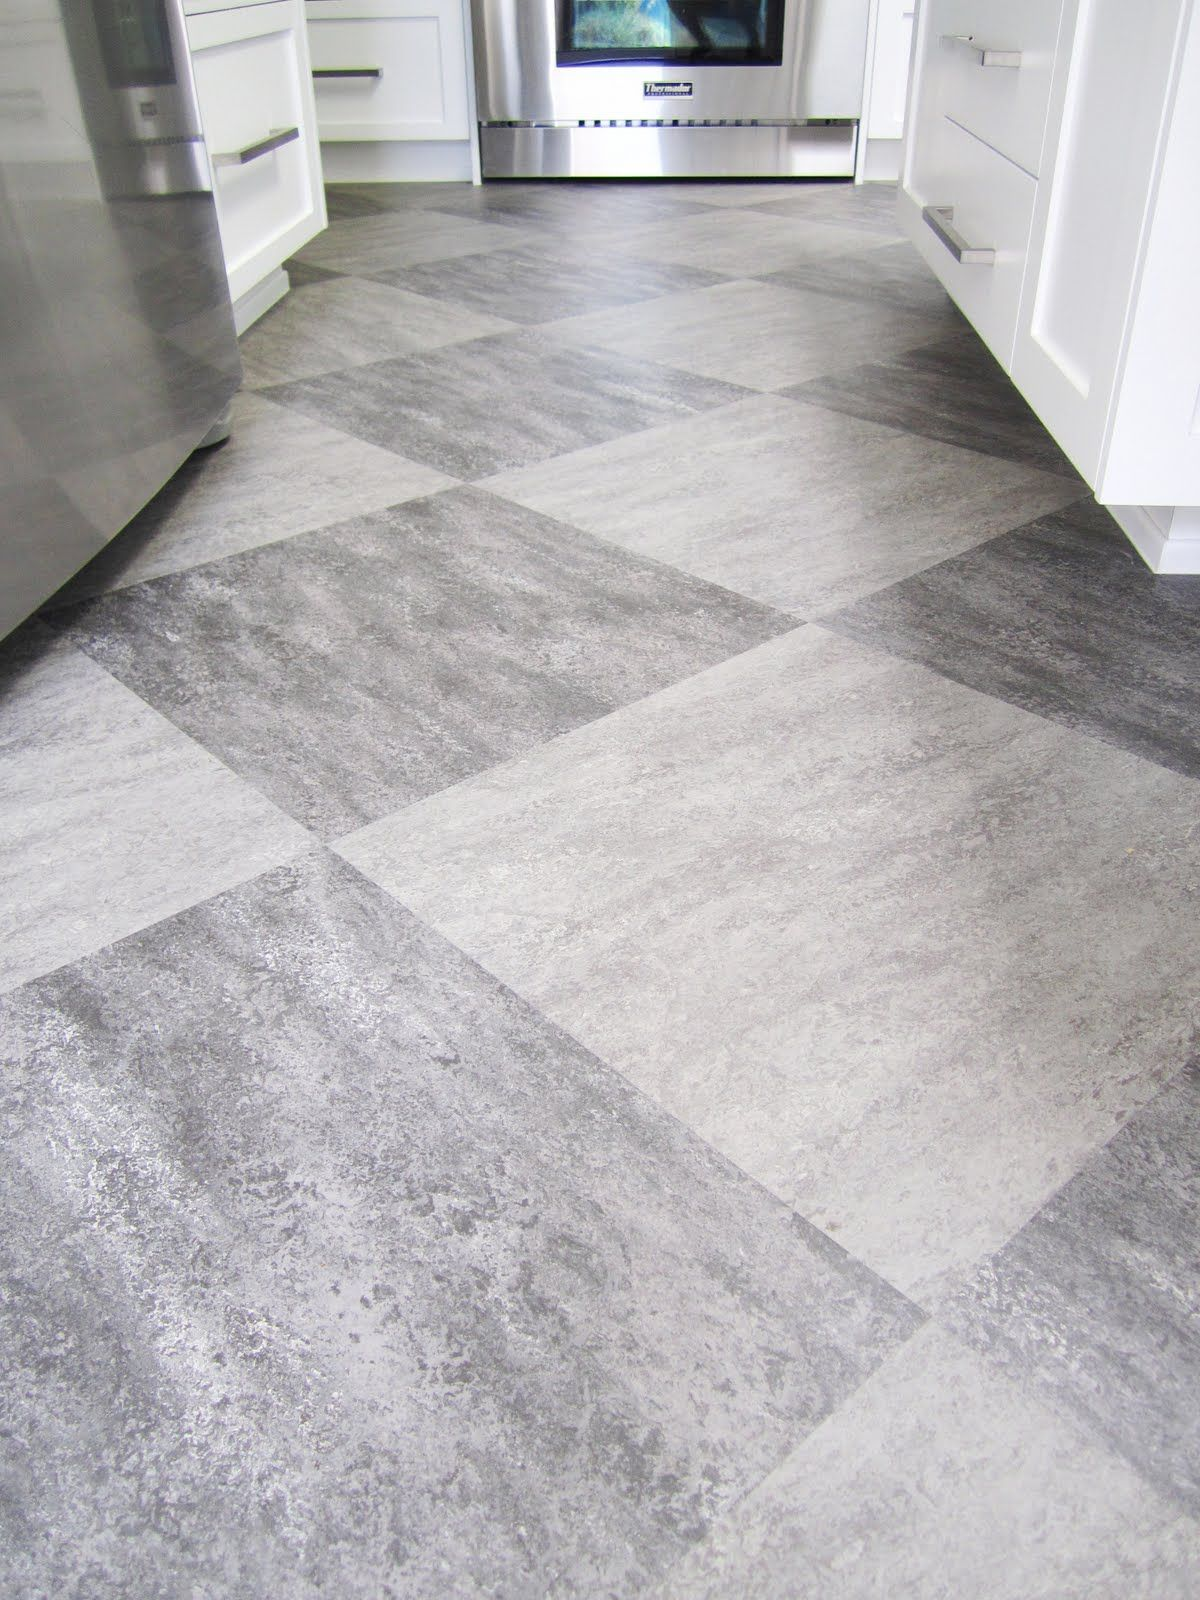 ... Kitchen Floor Lino Harlequin Tile Floors Harlequin Of Grey On Grey  Tiles Is Used On The ...